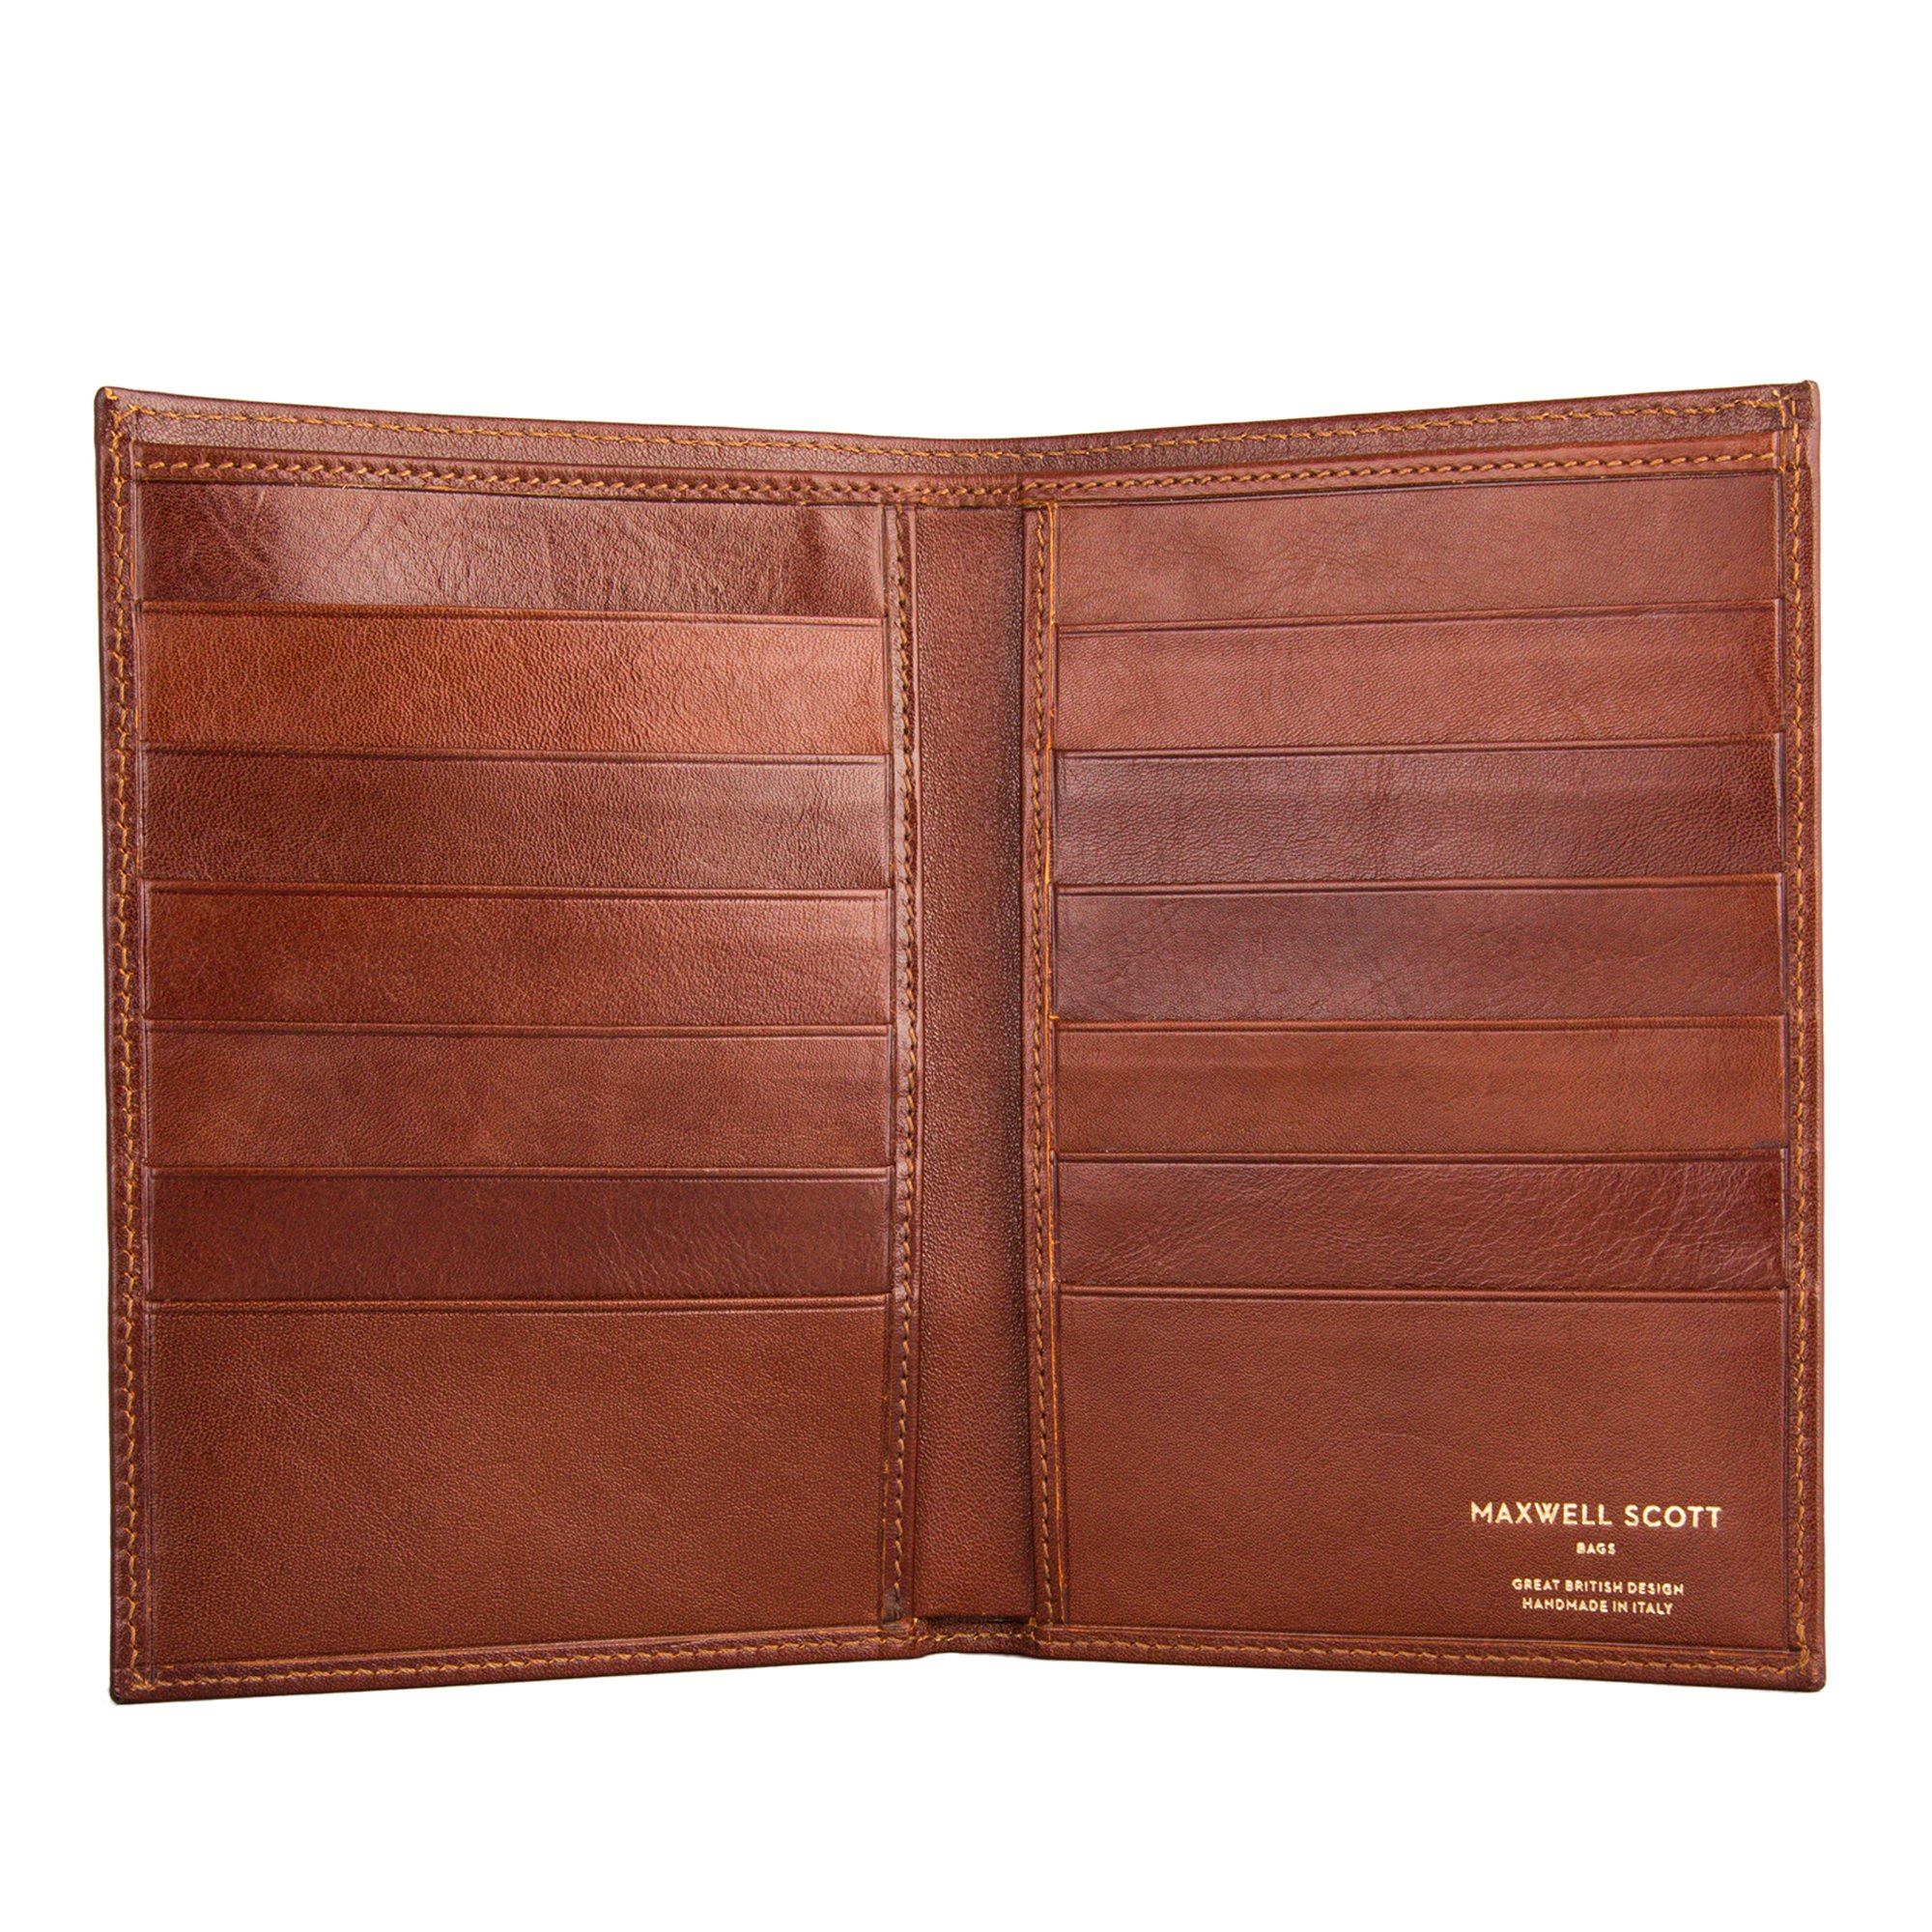 Maxwell Scott Personalized Luxury Tan Leather Jacket Wallet - One Size (The Pianillo) by Maxwell Scott Bags